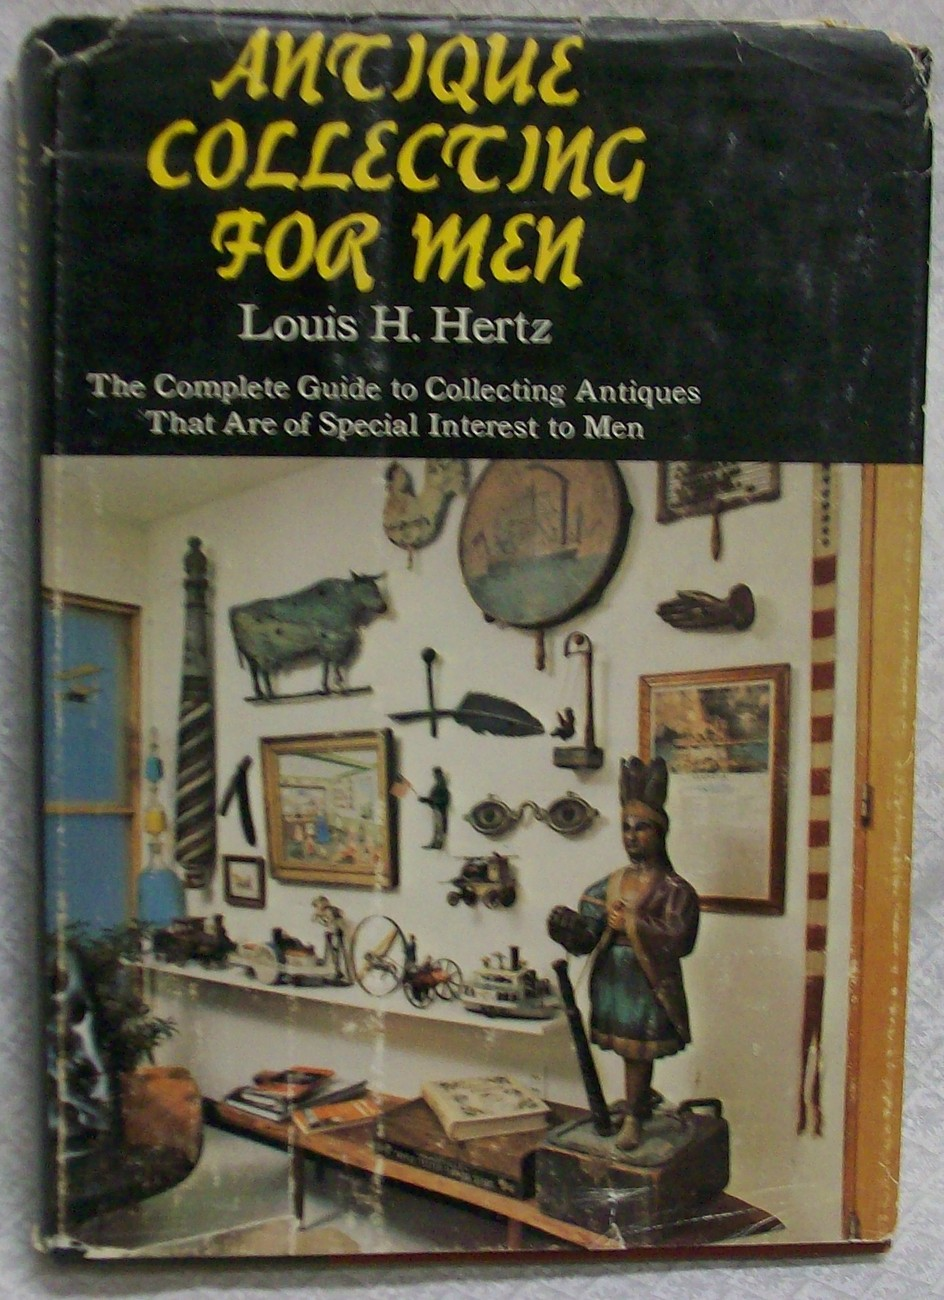 Antique Collecting for Men, by Hertz, Louis